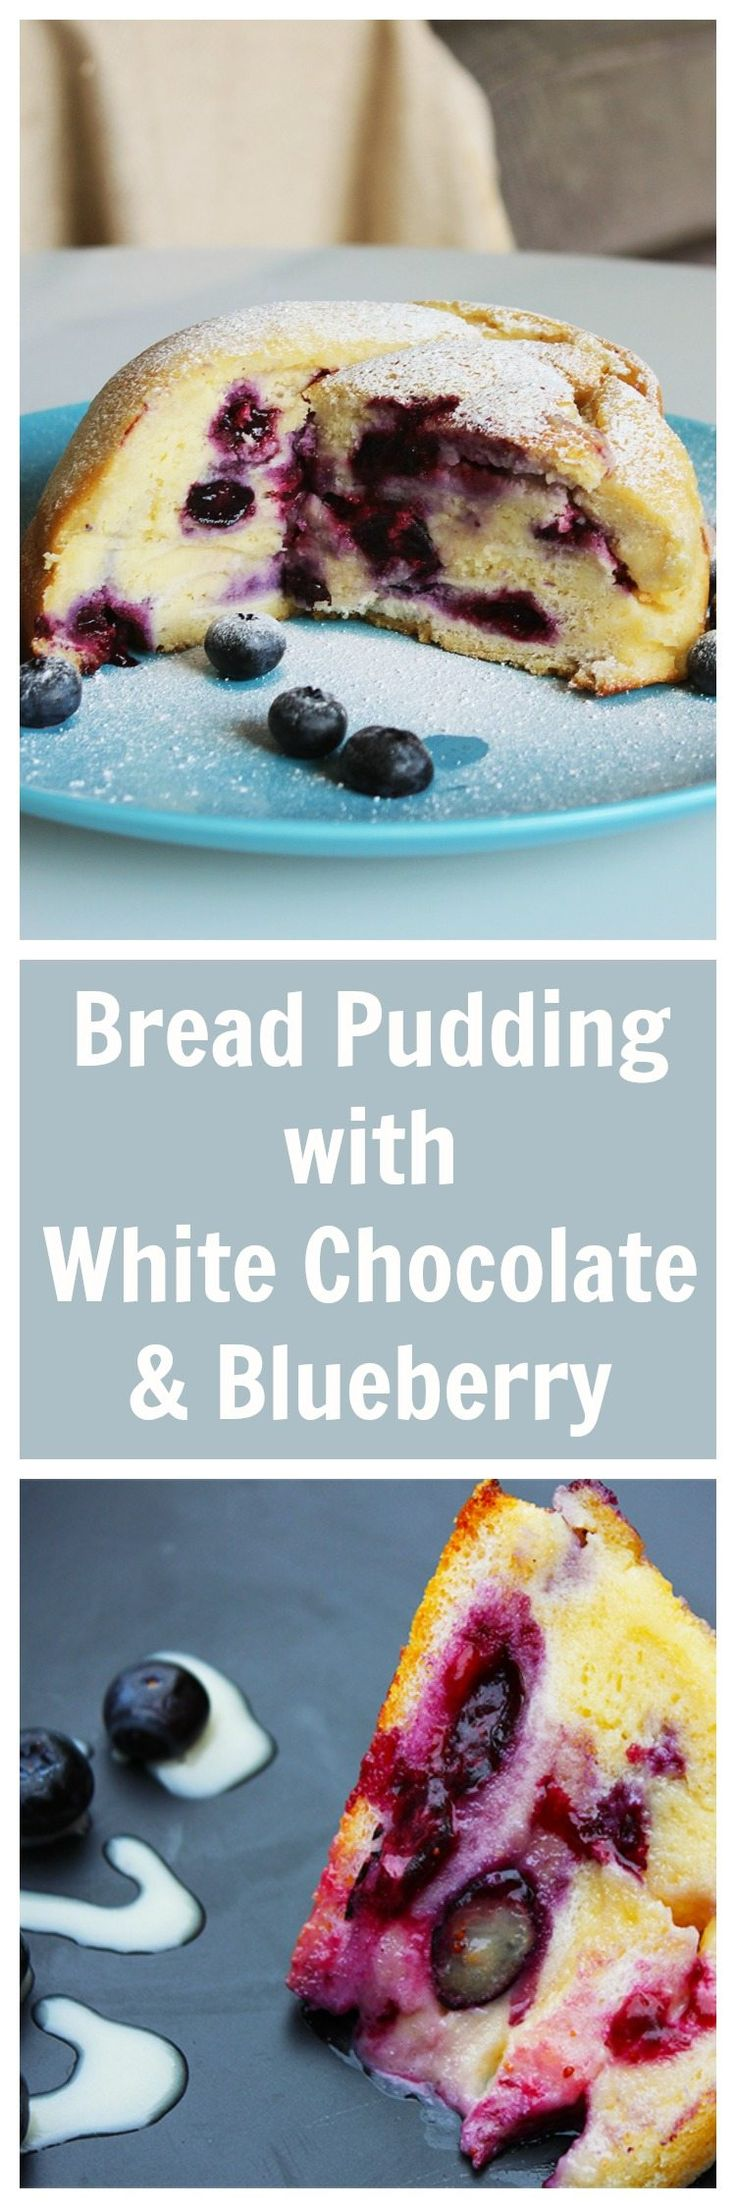 White Chocolate Blueberry Bread Pudding perfect dessert idea. Try this traditional pudding dessert that is a classic recipe.